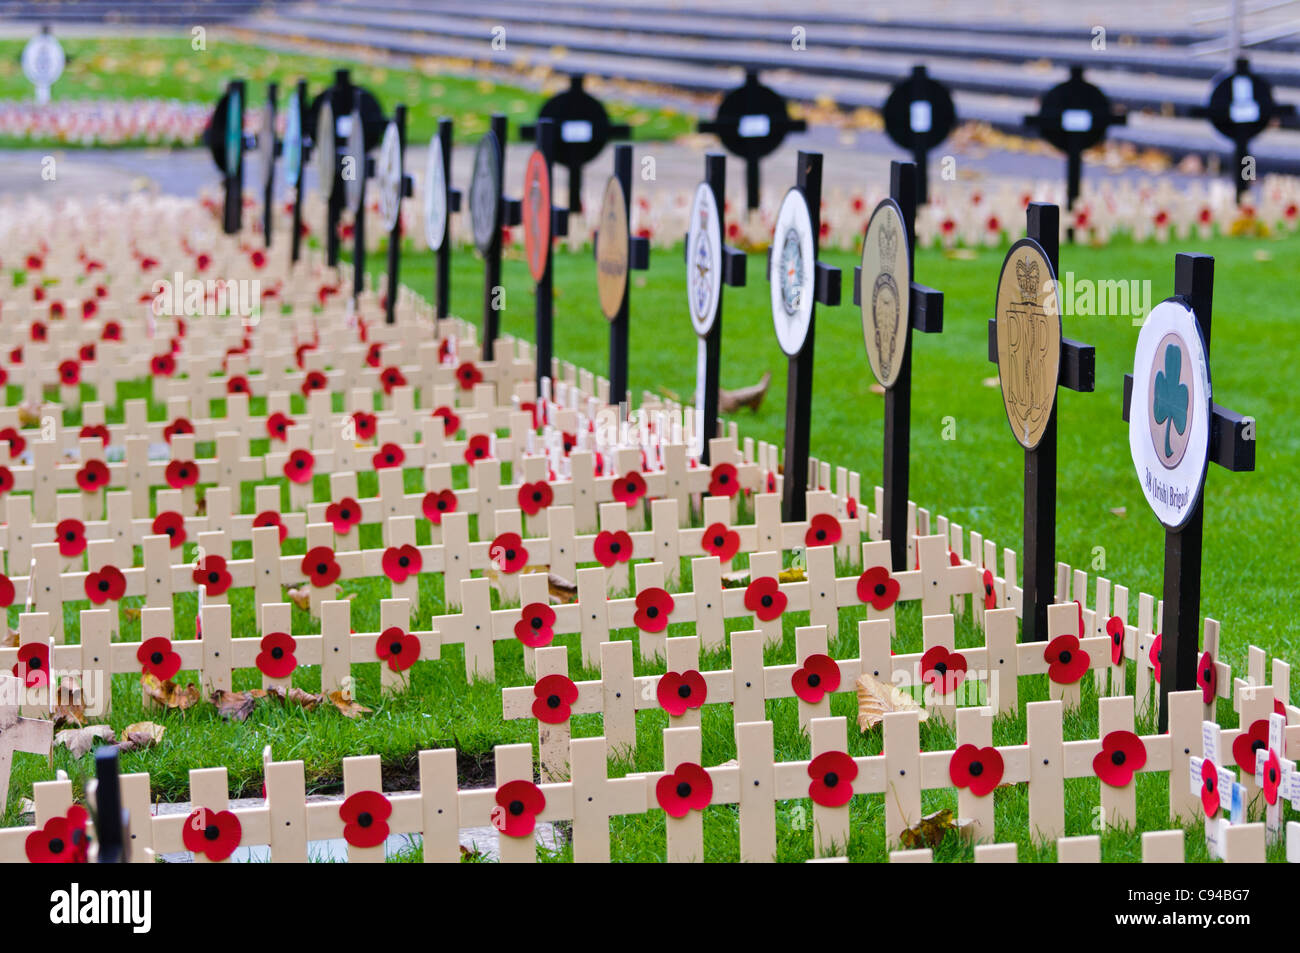 Wooden crosses with poppies in remembrance of servicemen and women killed in action. - Stock Image